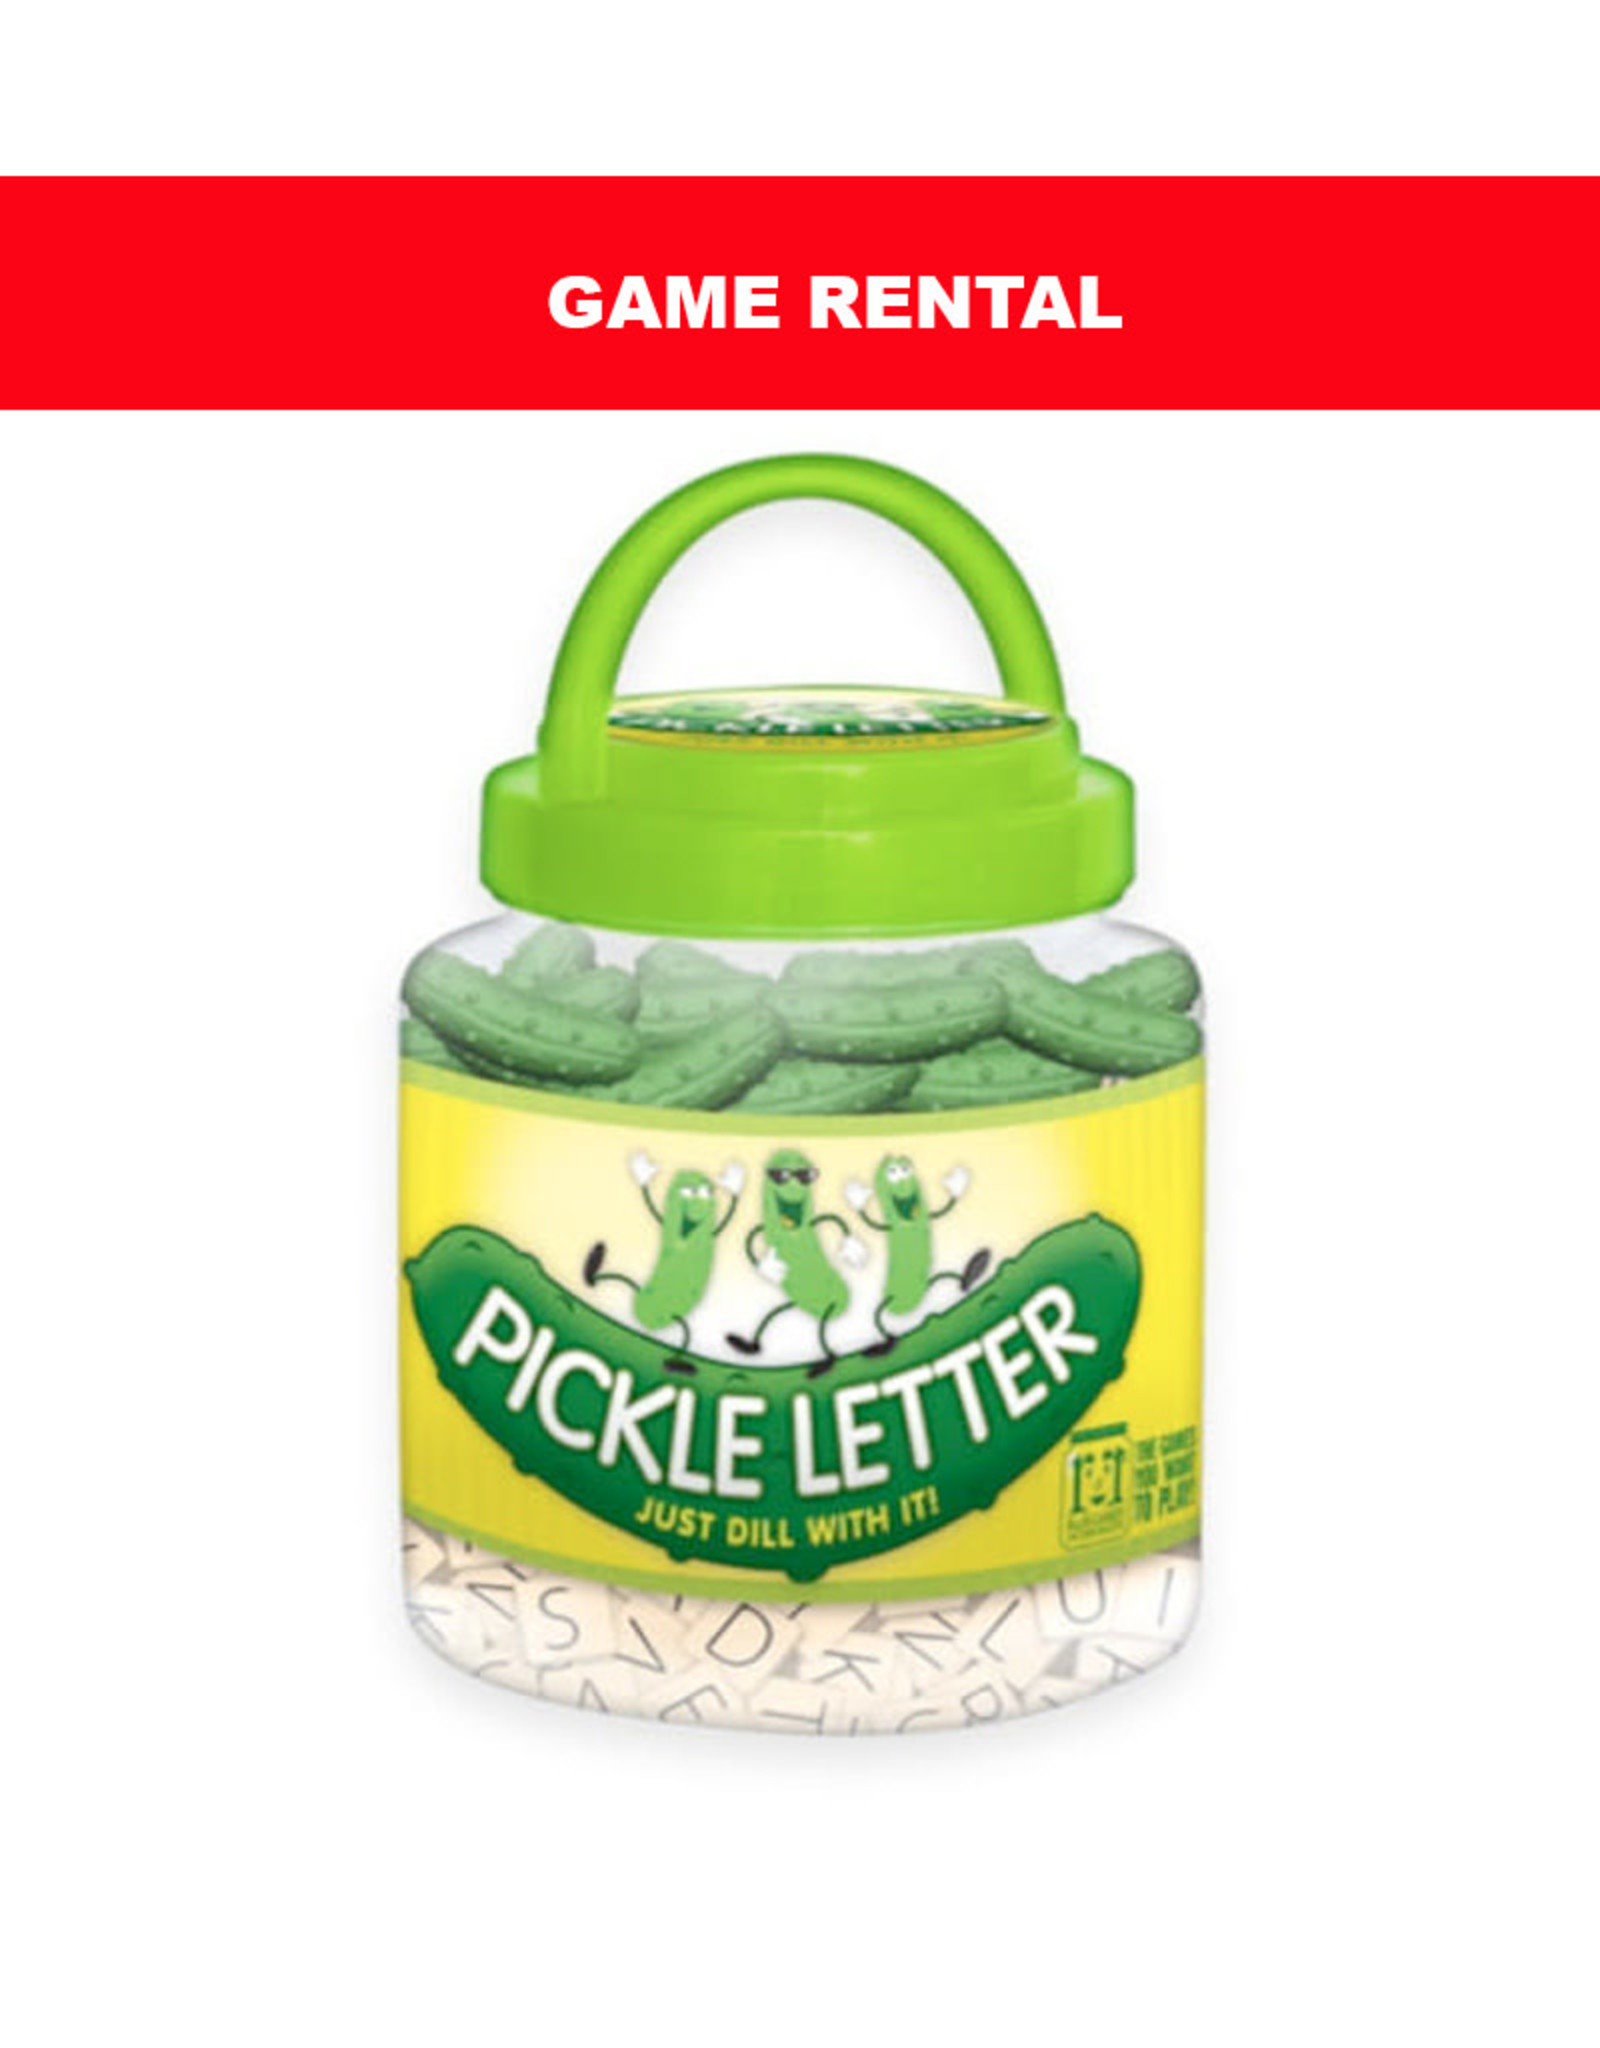 (RENT) PICKLE LETTER for a Day. Love It! Buy It!